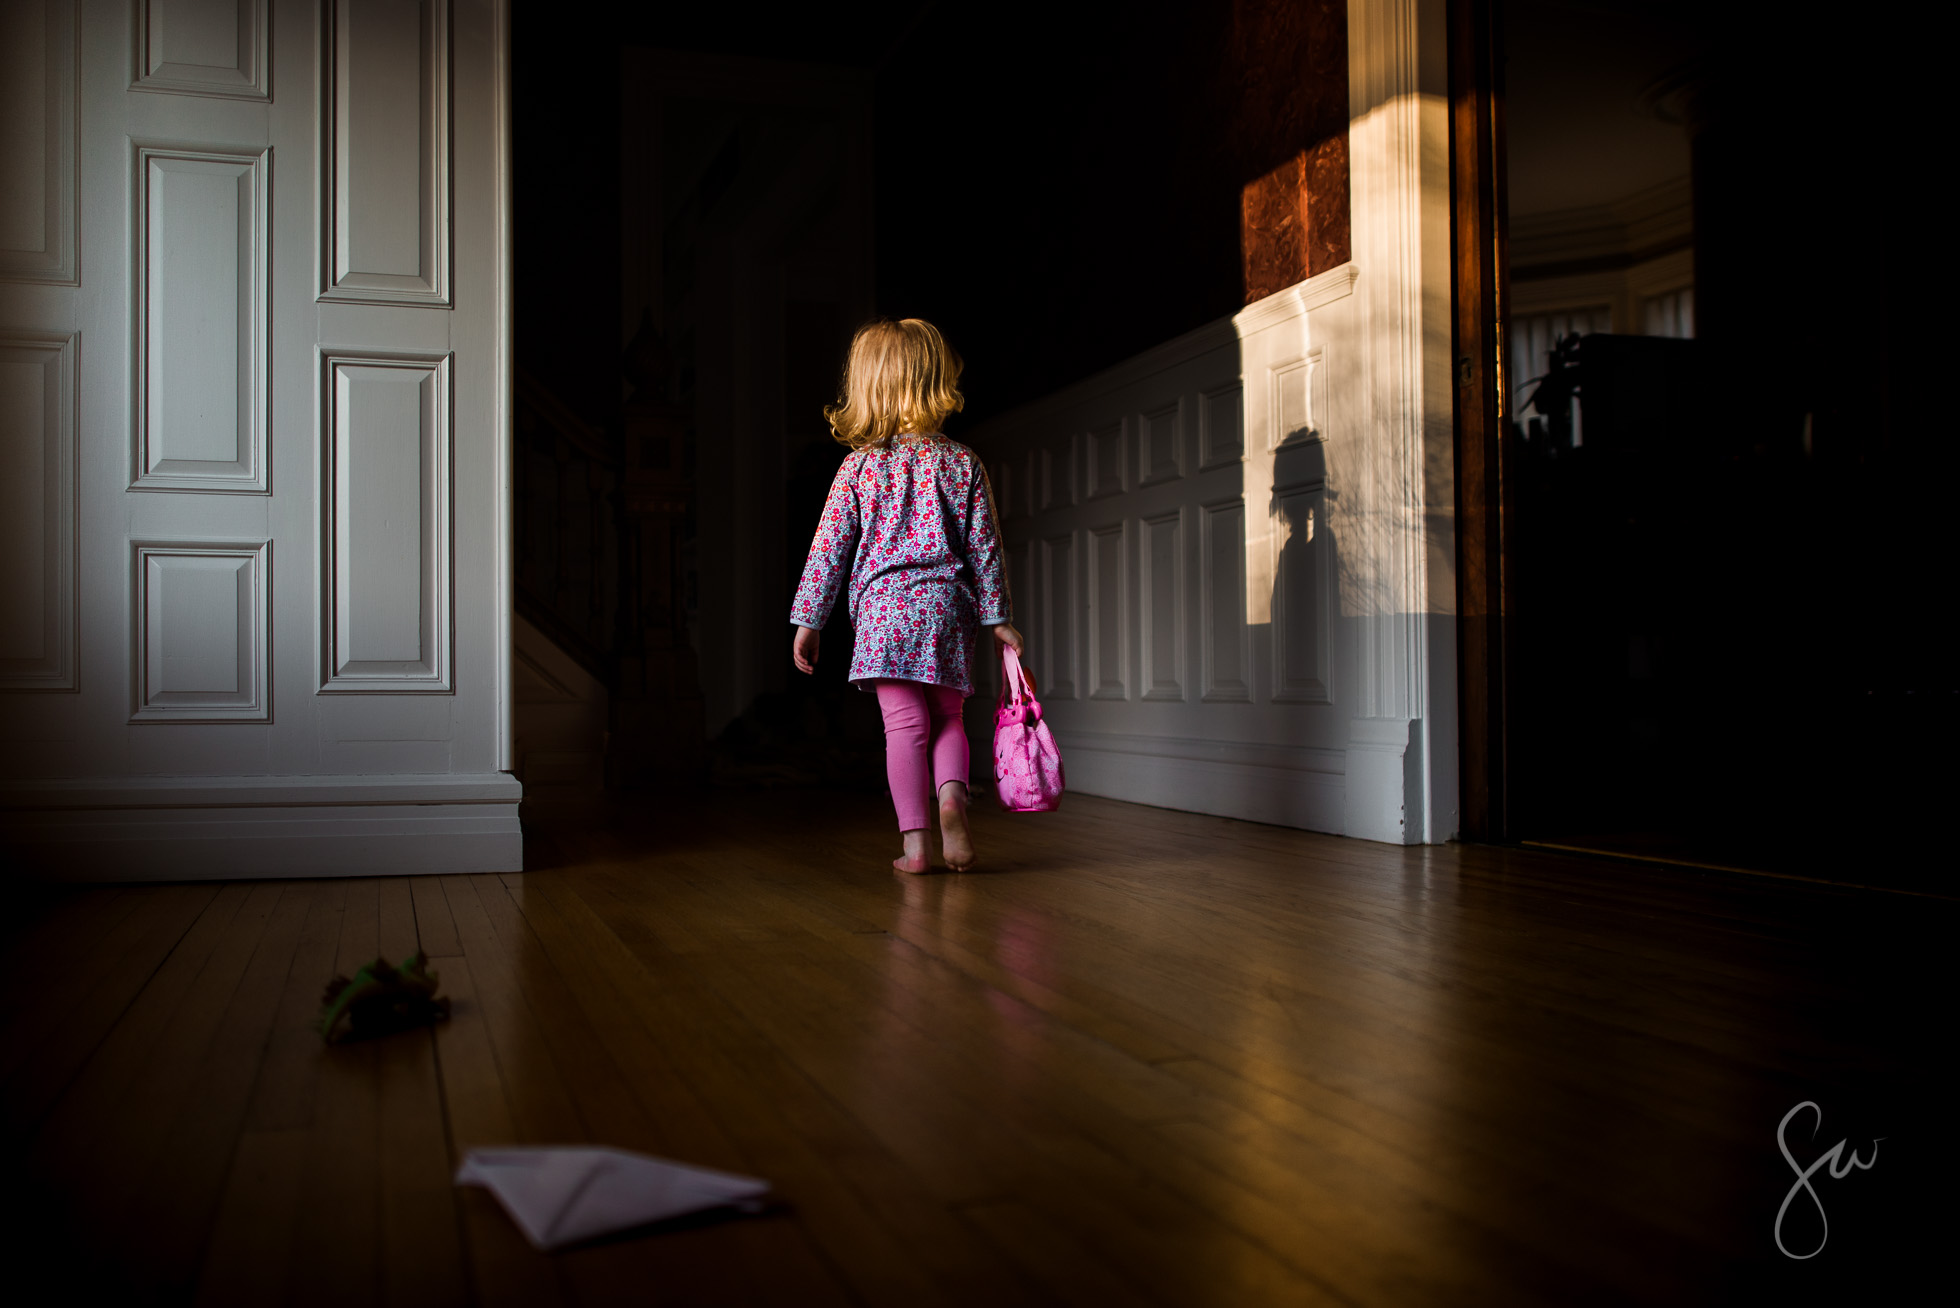 Little-Girl-Playing-Grown-Up-with-Pink-Purse-and-Blonde-Curls-in-Dramatic-Light-with-Shadow-3286